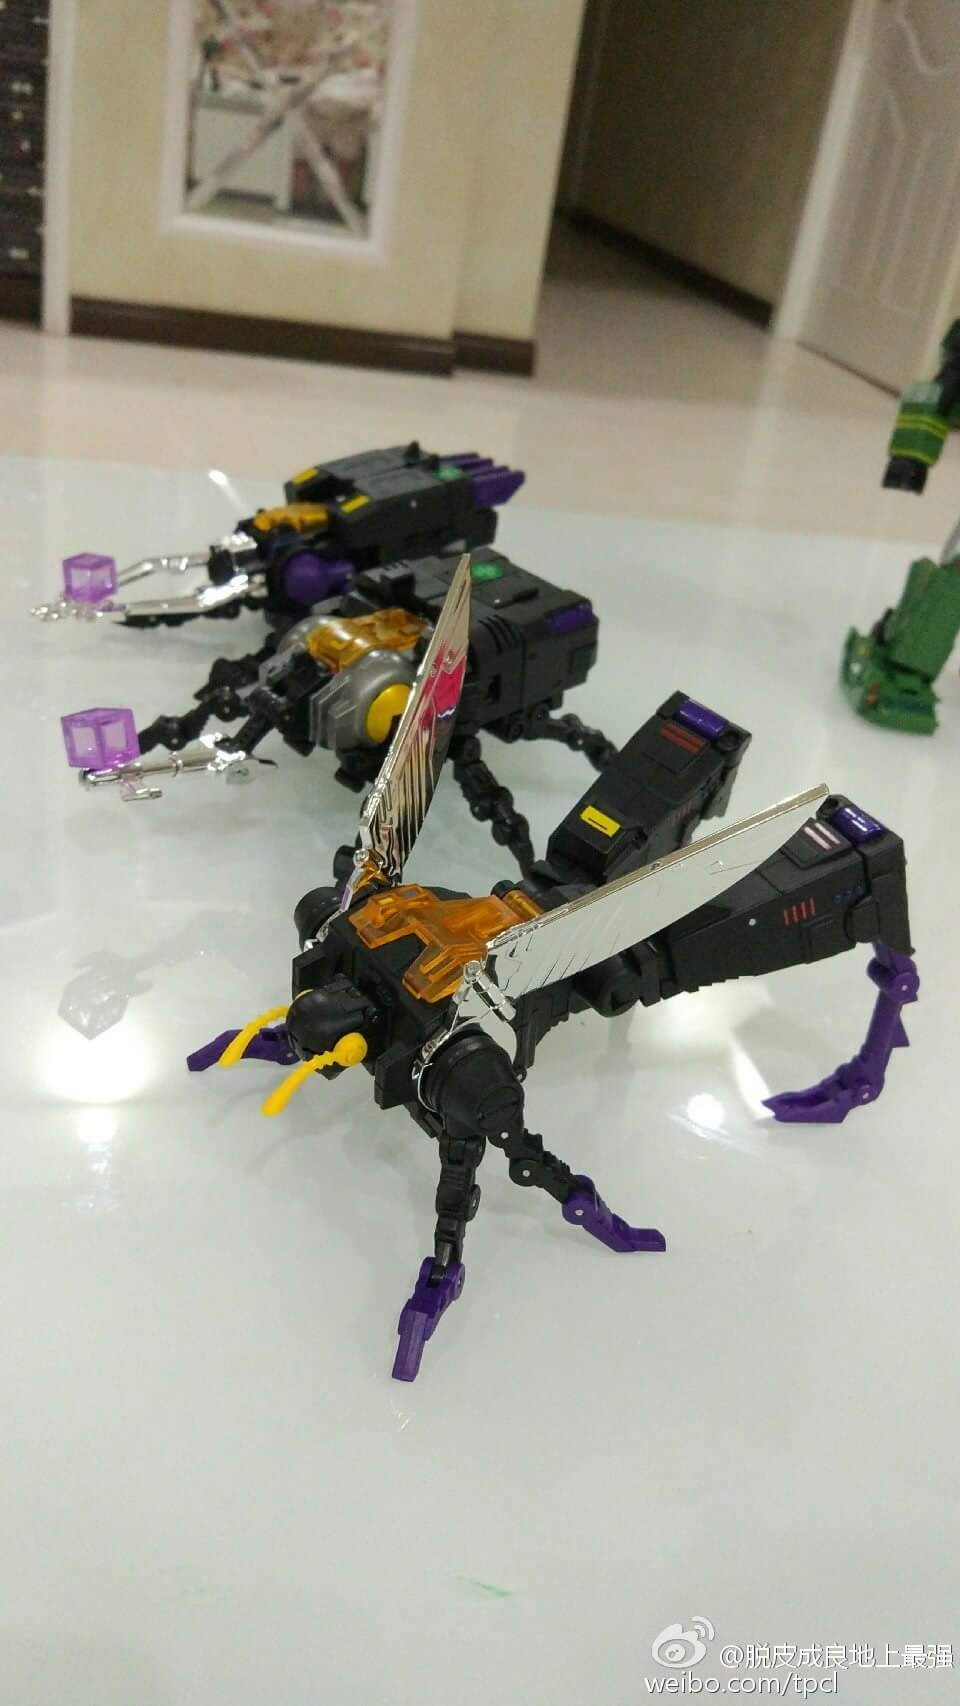 [Fanstoys] Produit Tiers - Jouet FT-12 Grenadier / FT-13 Mercenary / FT-14 Forager - aka Insecticons - Page 4 7xbJmDgP